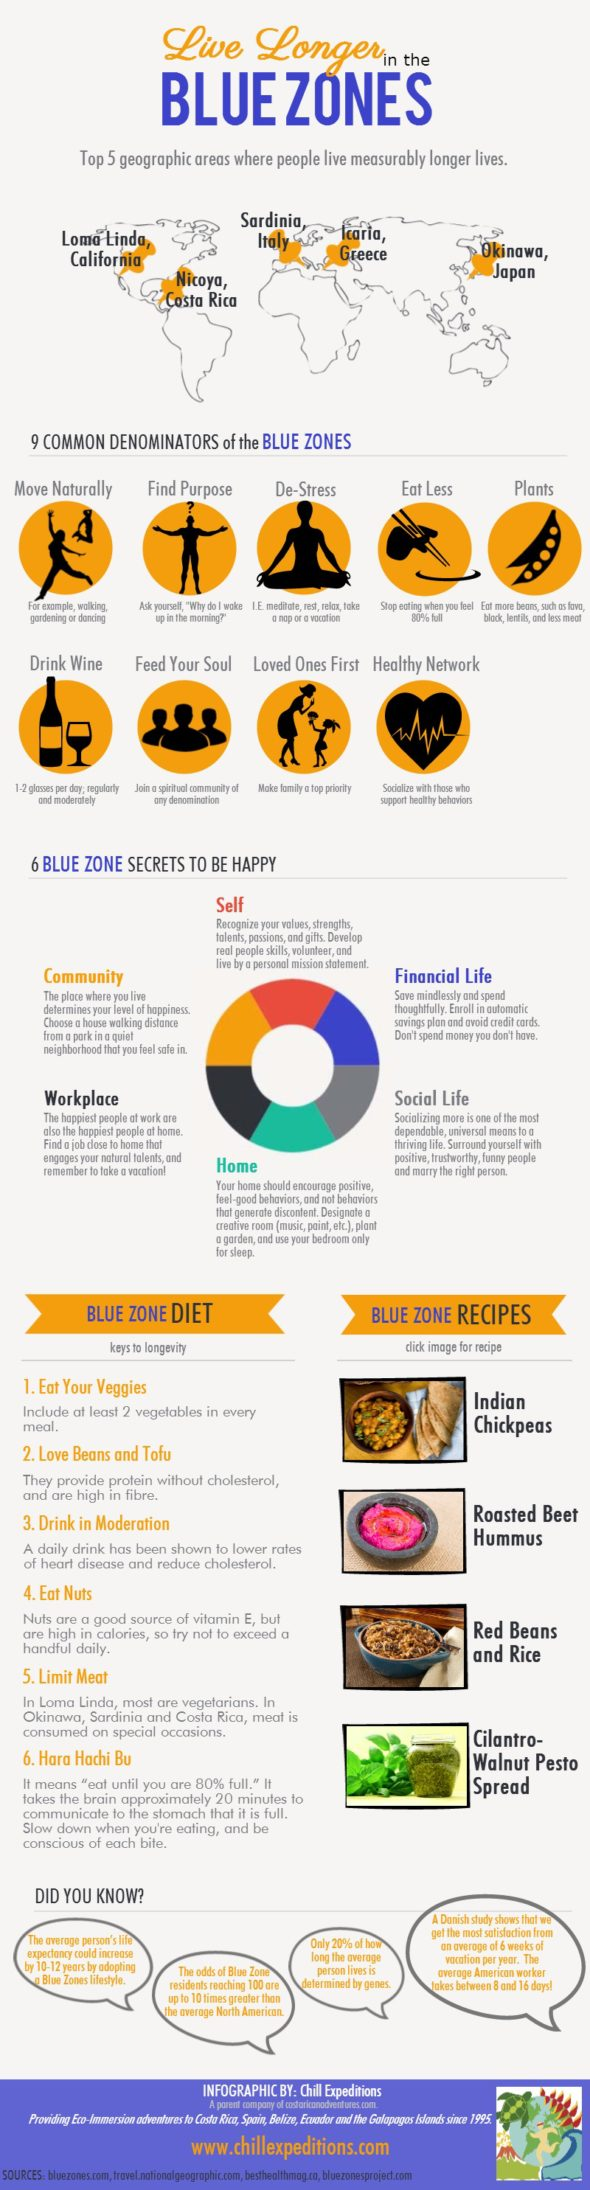 Infographic: Live Longer in the Blue Zones